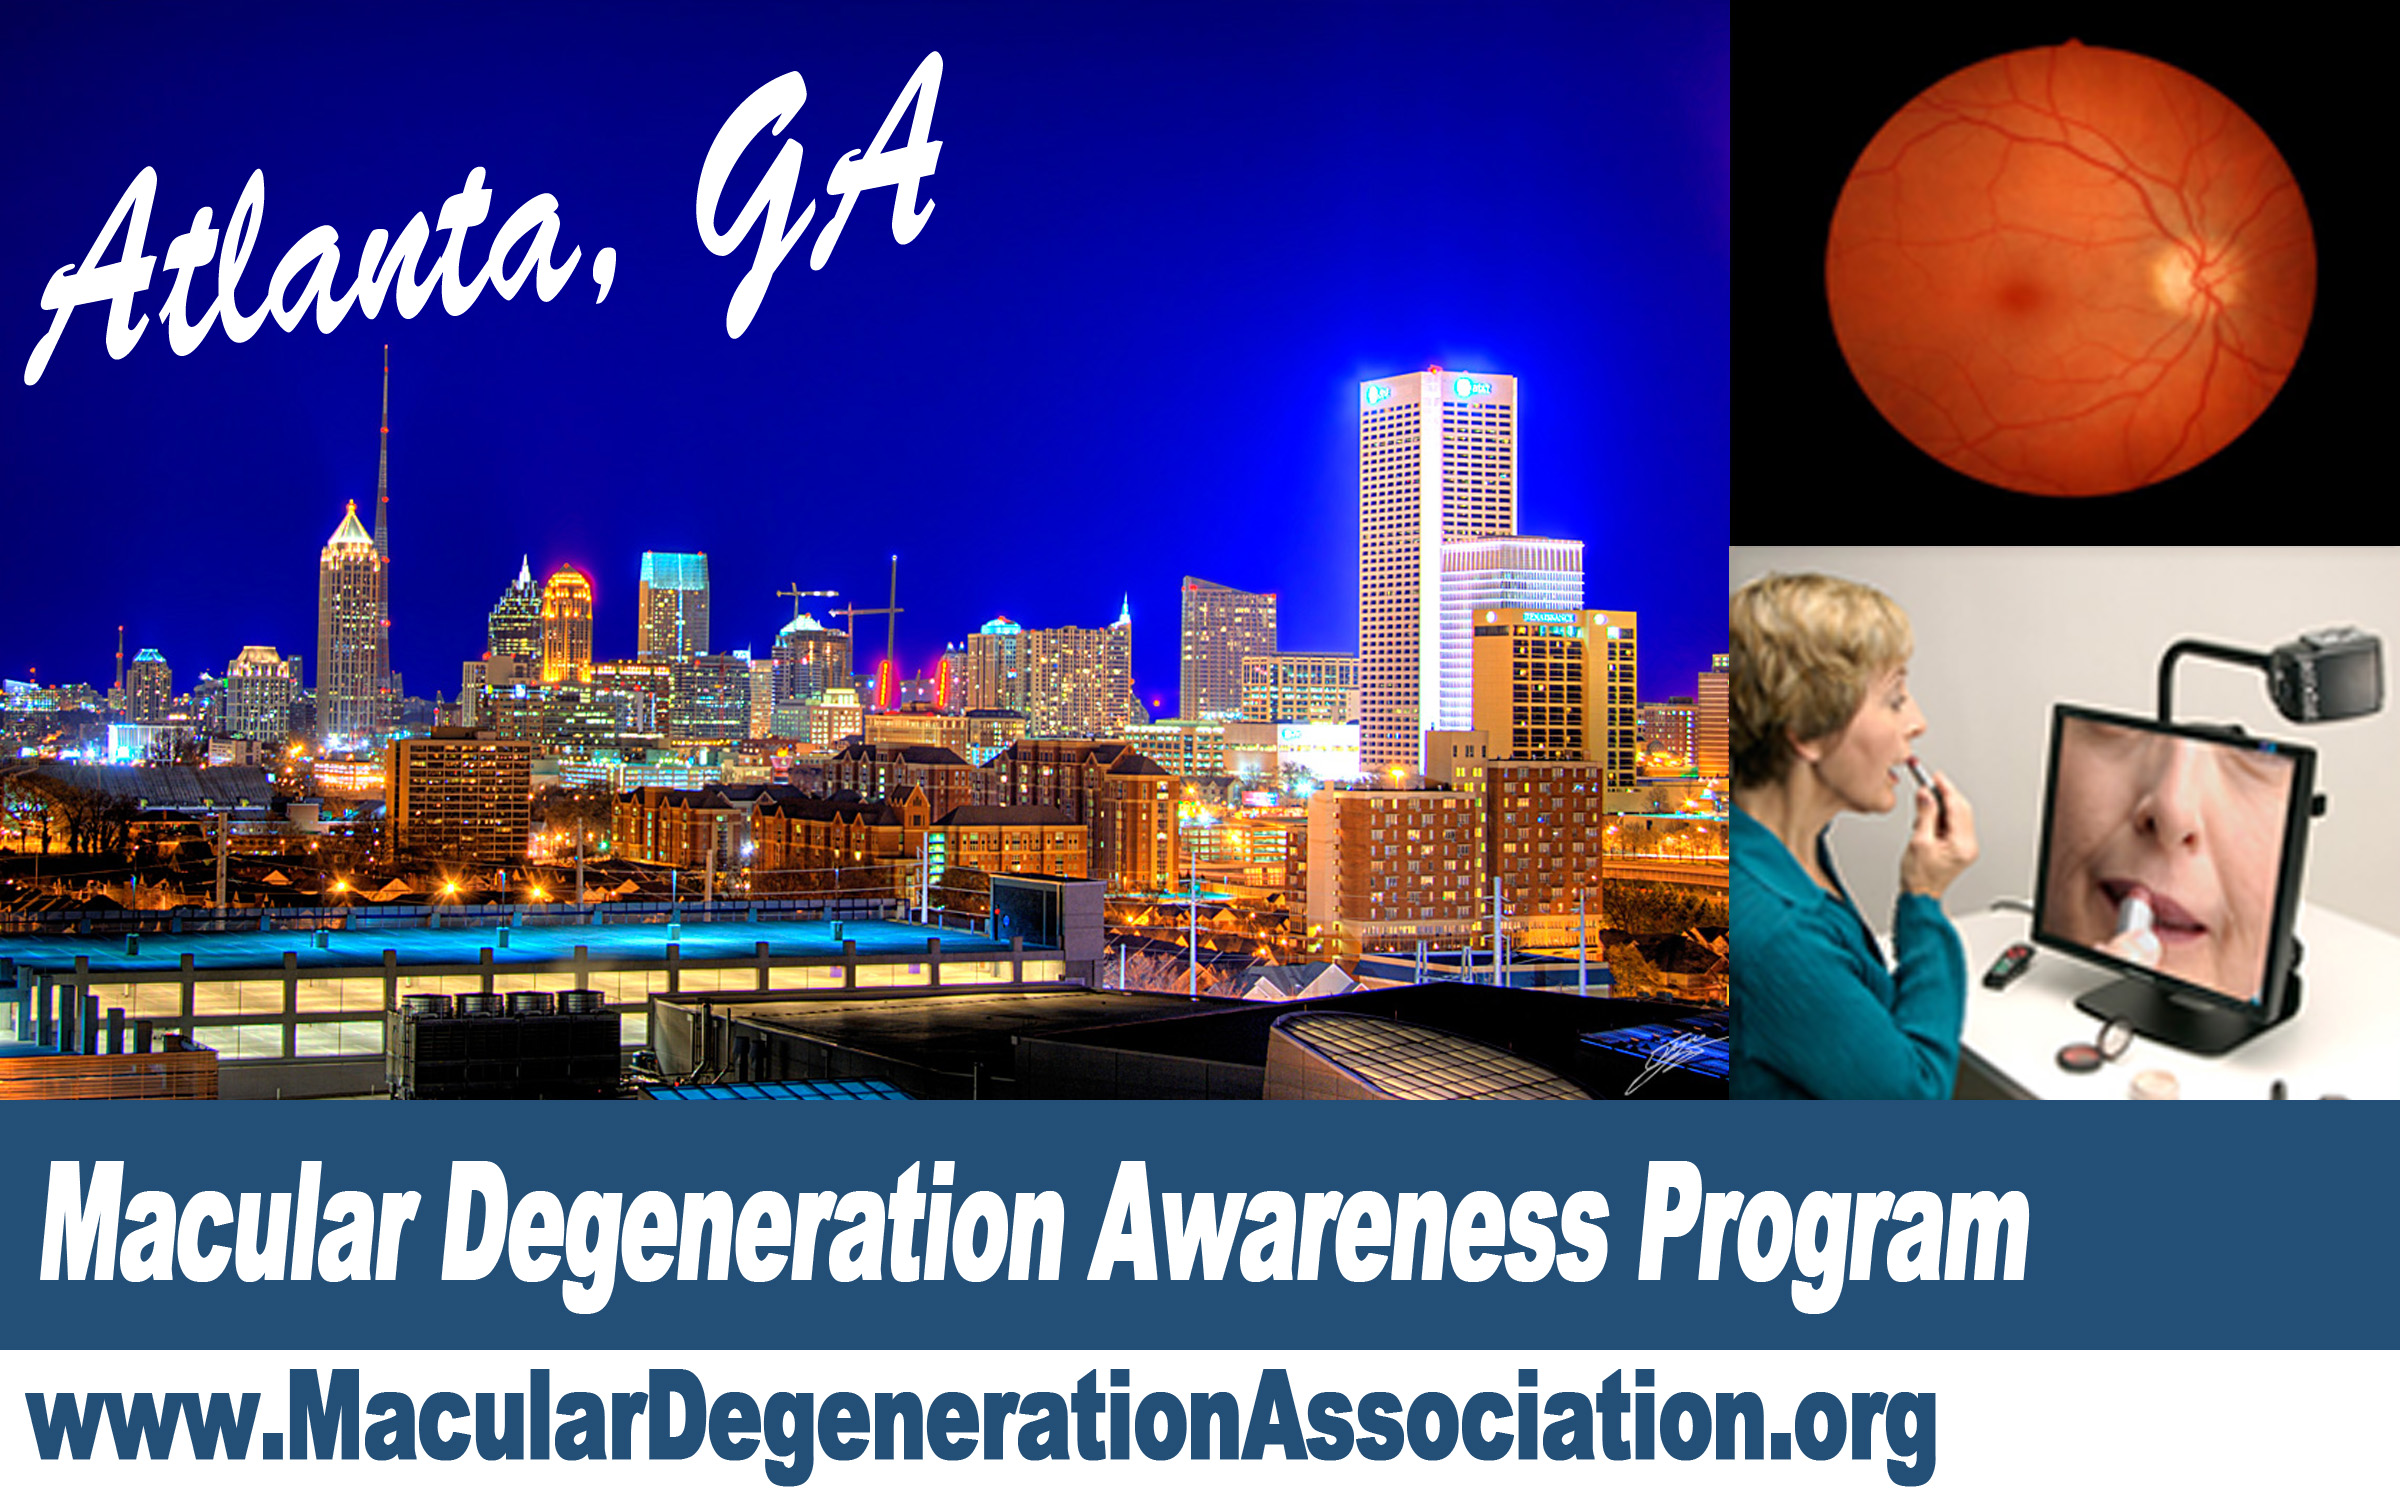 Macular Degeneration awareness program Atlanta